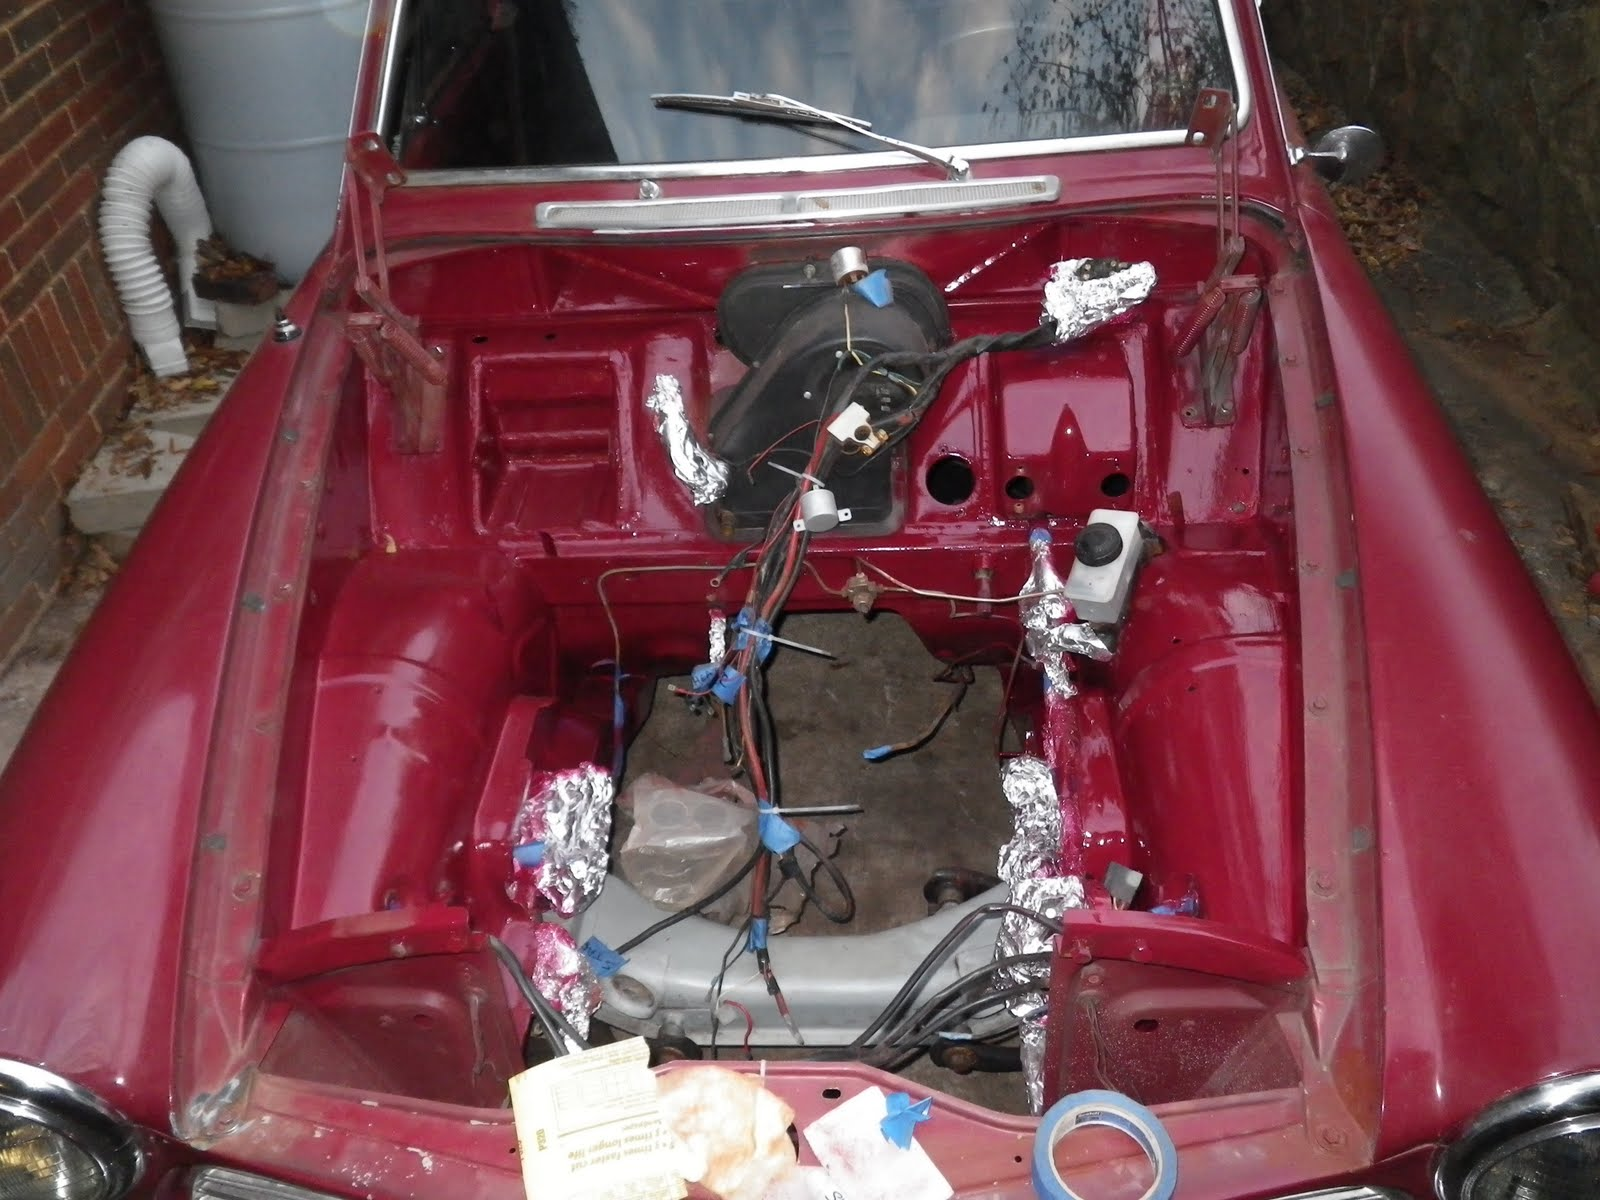 tim s 1967 volvo 122s the wiring is a mess but it started up on the second try missed a wire to the starter